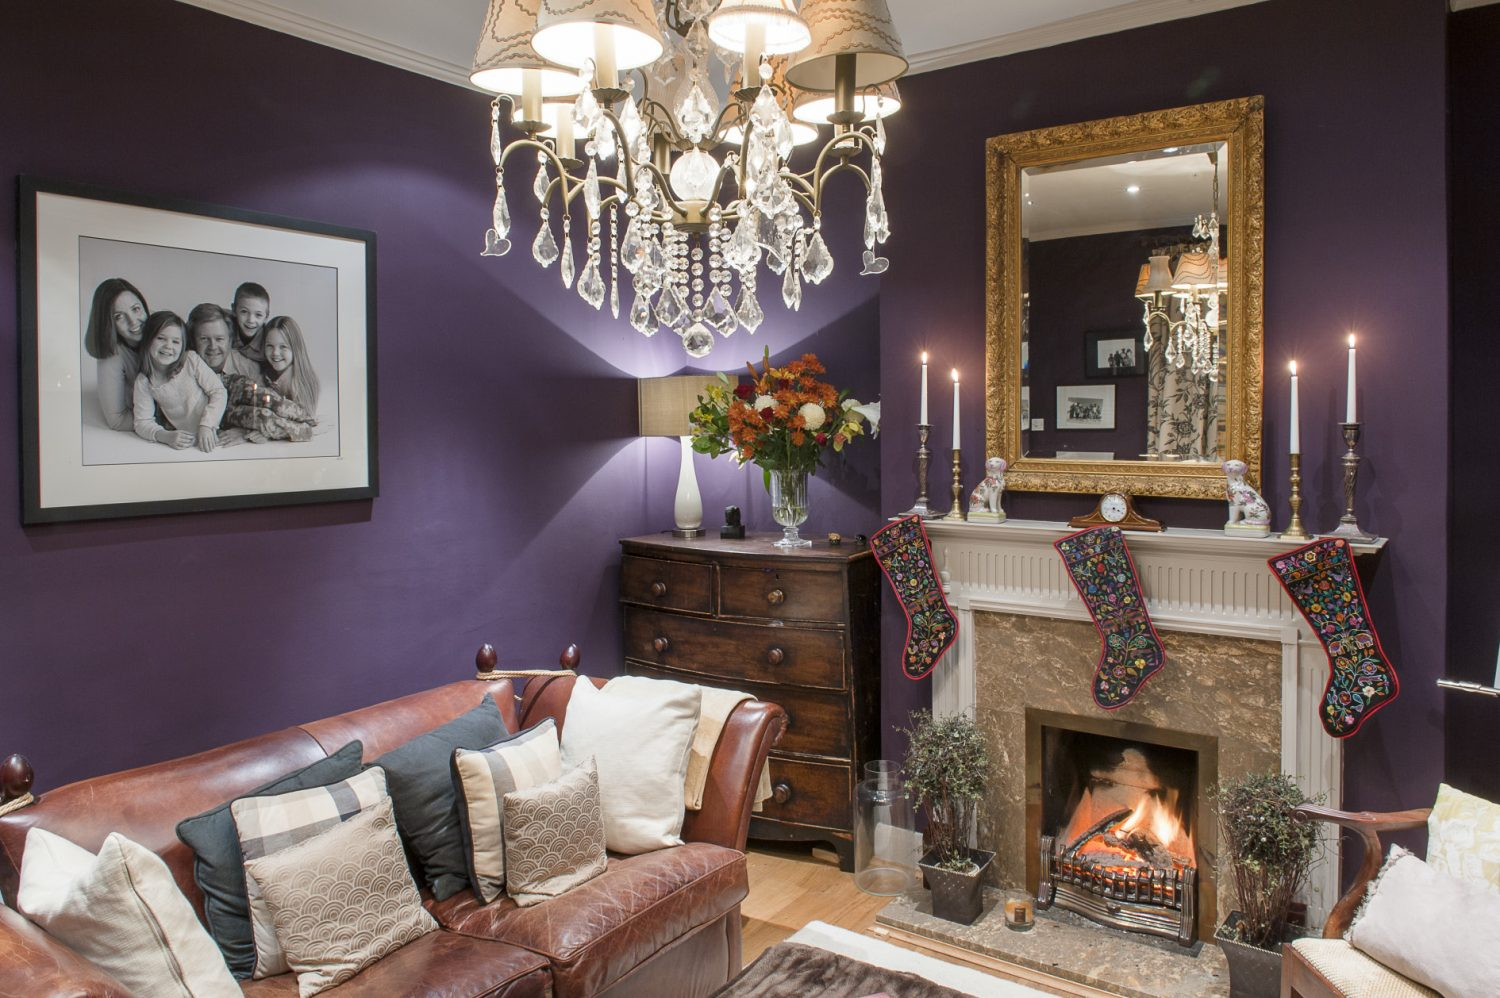 The snug is painted a rich, dark and opulent aubergine. Stockings hang neatly above the open fire, whilst a gilt-edged mirror above reflects the candlelight around the room. A chandelier from Mister Smith Interiors hangs from the centre of the ceiling